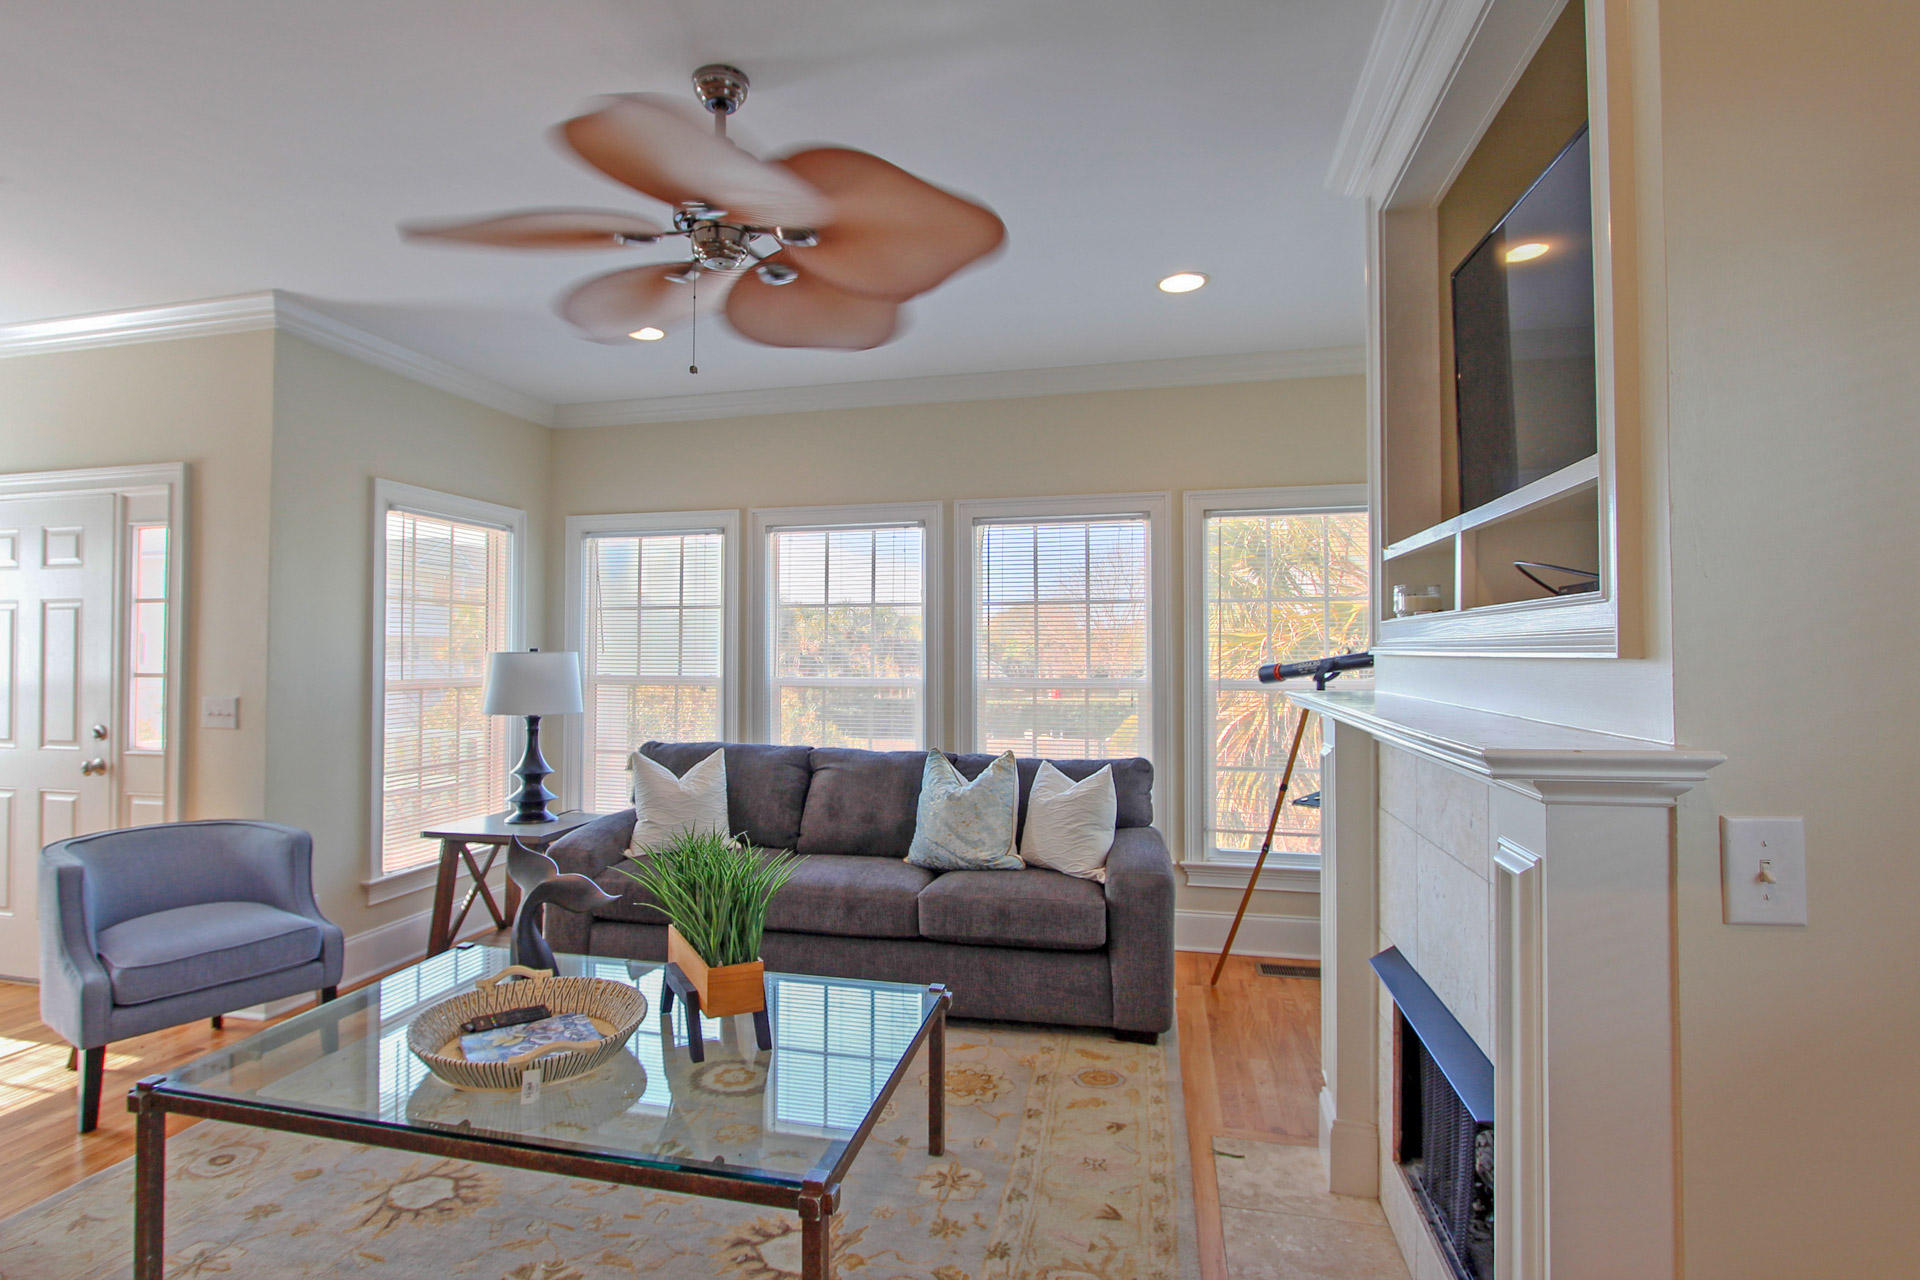 Isle of Palms Homes For Sale - 8 10th, Isle of Palms, SC - 5